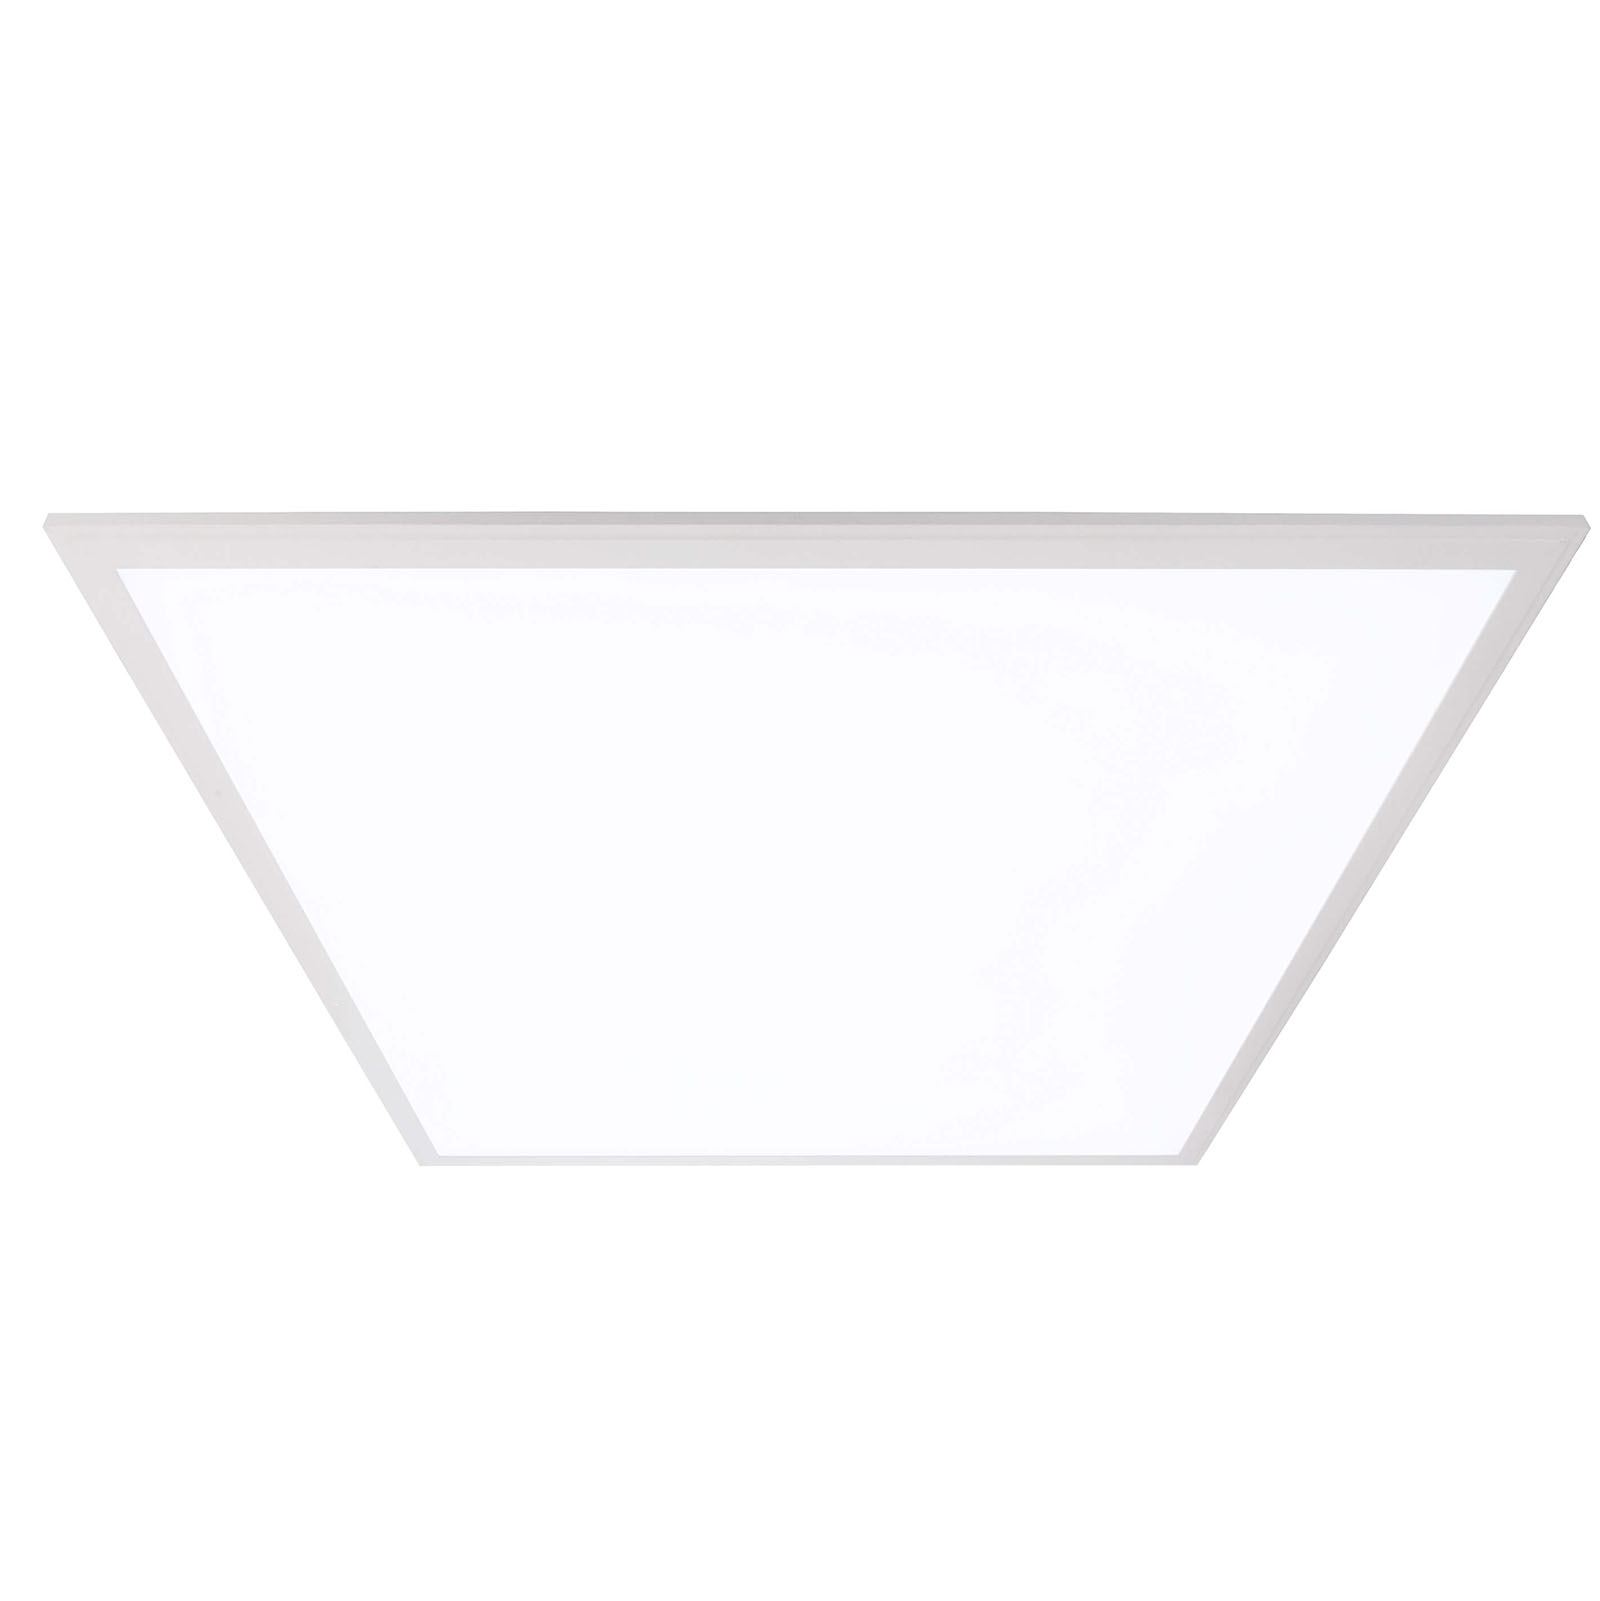 40W slim square recessed LED panel 120x30 3 in 1 light from 3000K to 5500K 230V